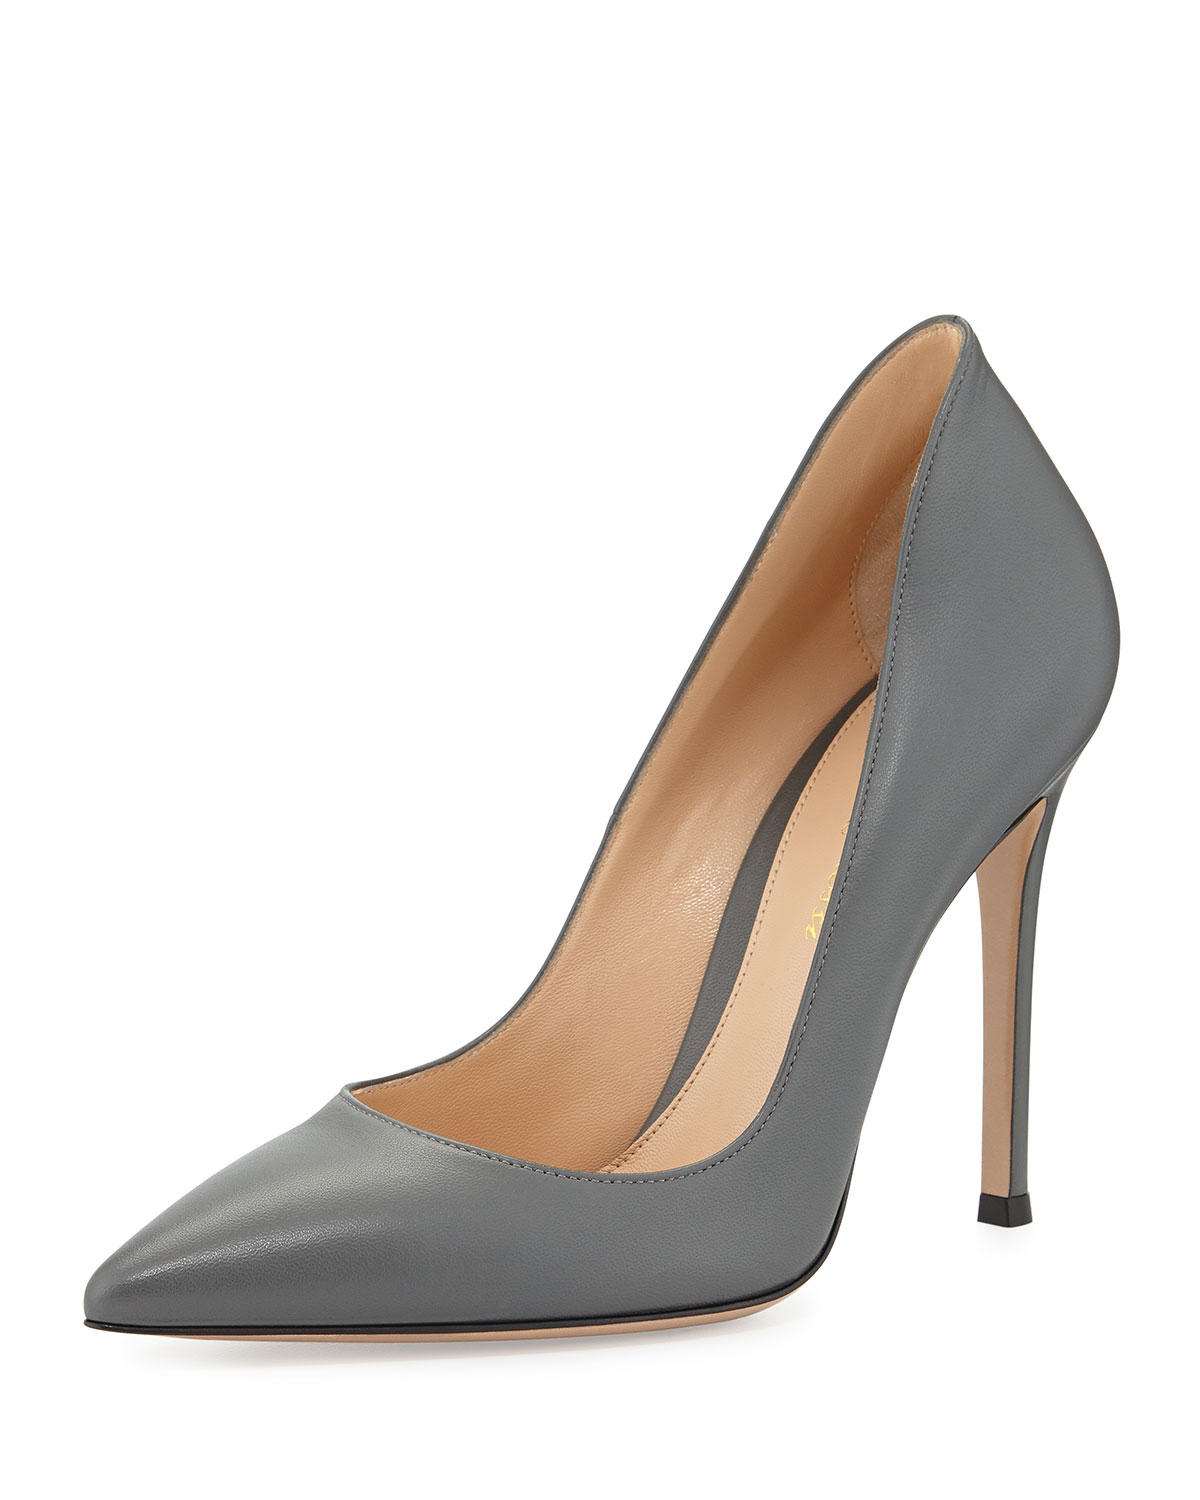 Gianvito Rossi Leather Pointed-Toe Pump, Gray